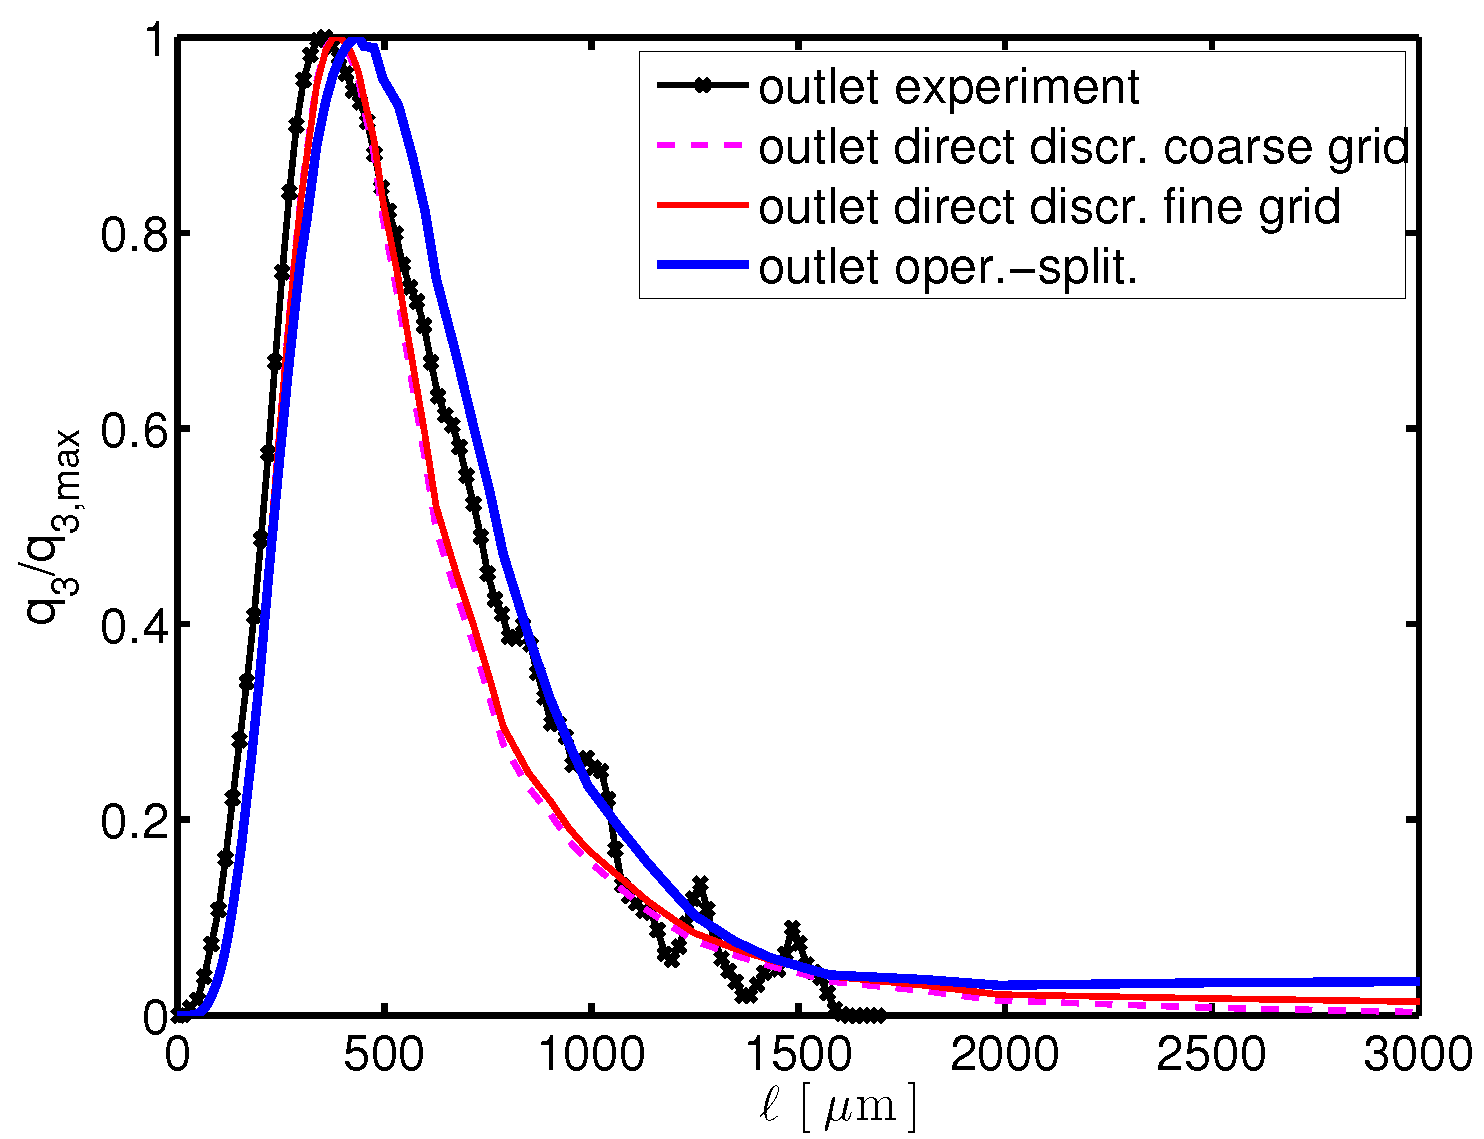 Application Oriented Research Topic Of Wias Numerical Methods And Split As Shown On A Timespace Diagram The Figure 2 Comparison Accuracy Different In Approximating Distribution Urea Crystals At Outlet An Experimental Tube